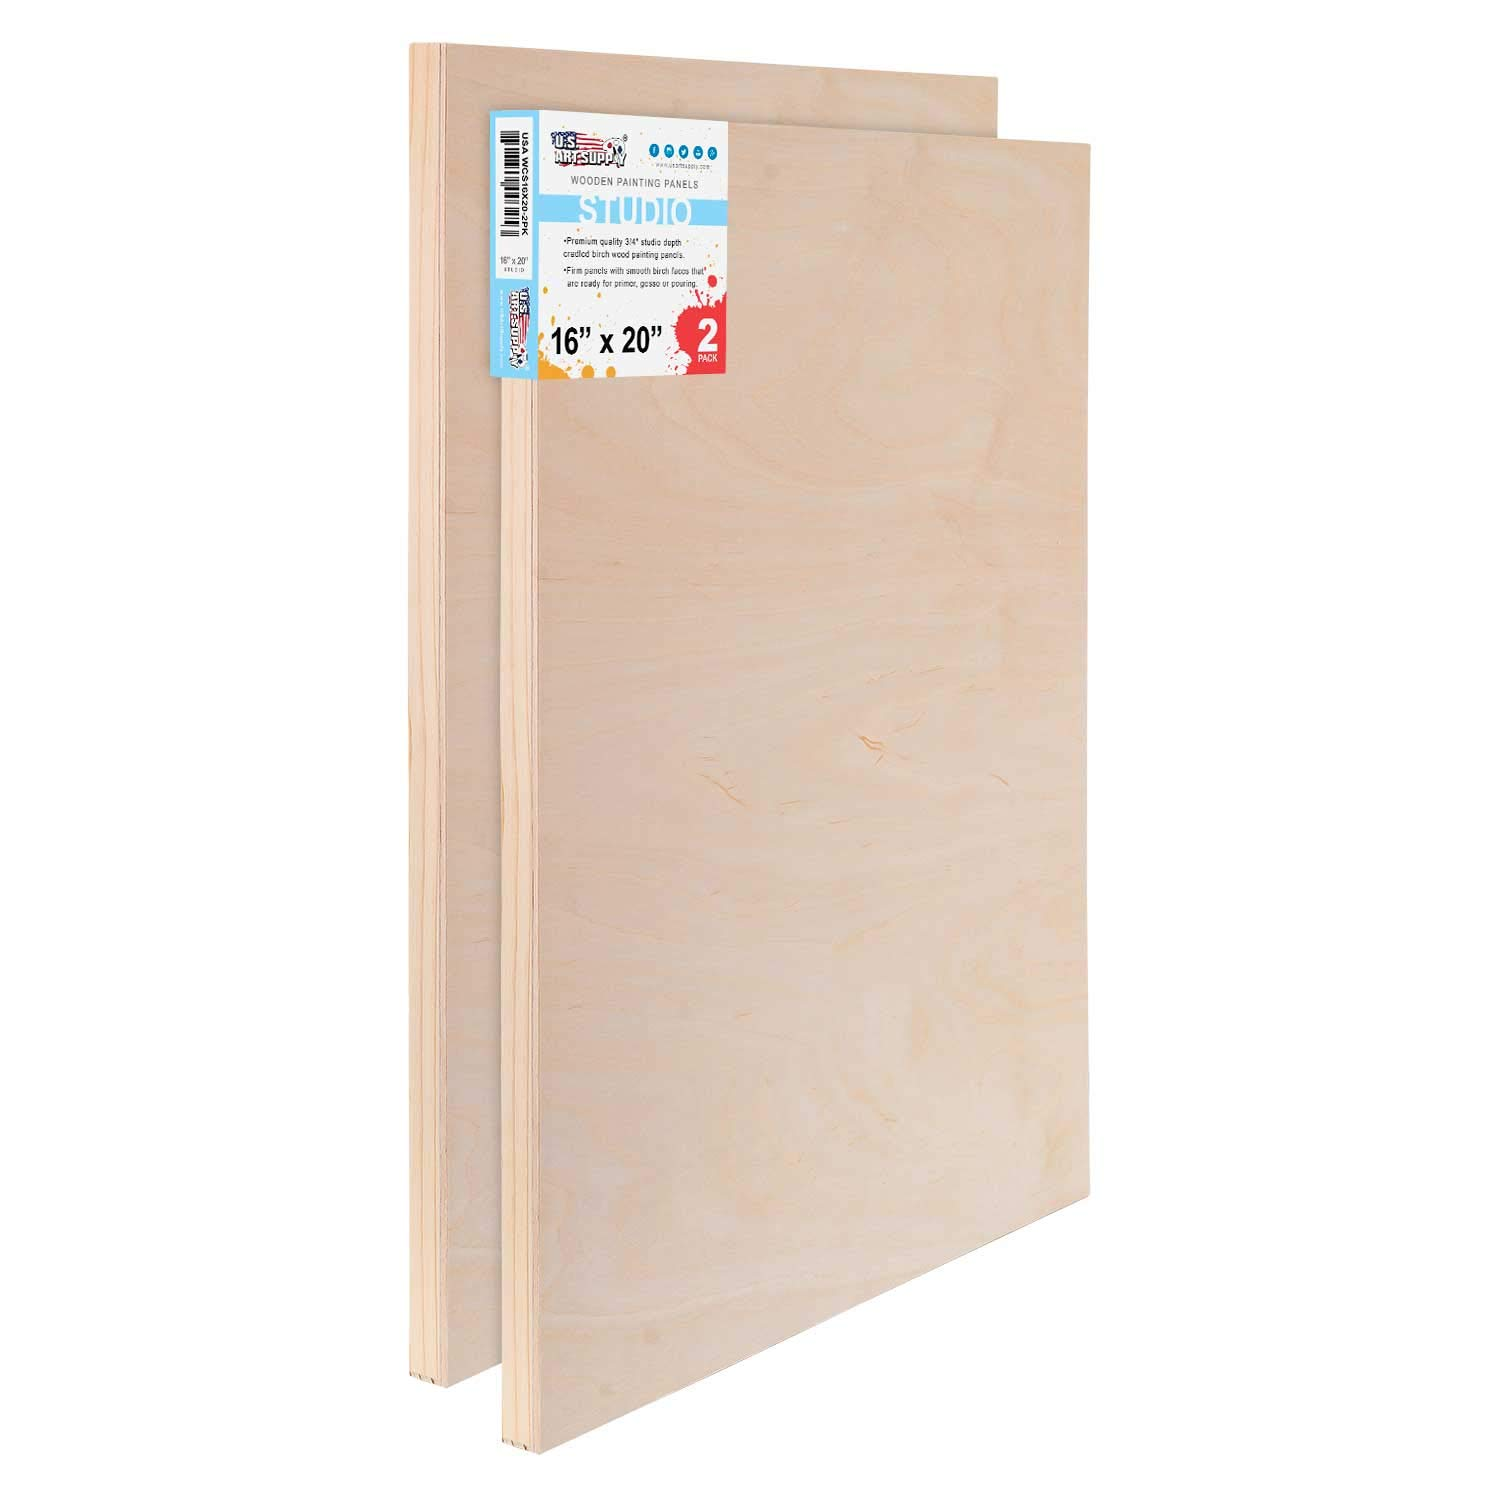 U.S. Art Supply 16'' x 20'' Birch Wood Paint Pouring Panel Boards, Studio 3/4'' Deep Cradle (Pack of 2) - Artist Wooden Wall Canvases - Painting Mixed-Media Craft, Acrylic, Oil, Watercolor, Encaustic by US Art Supply